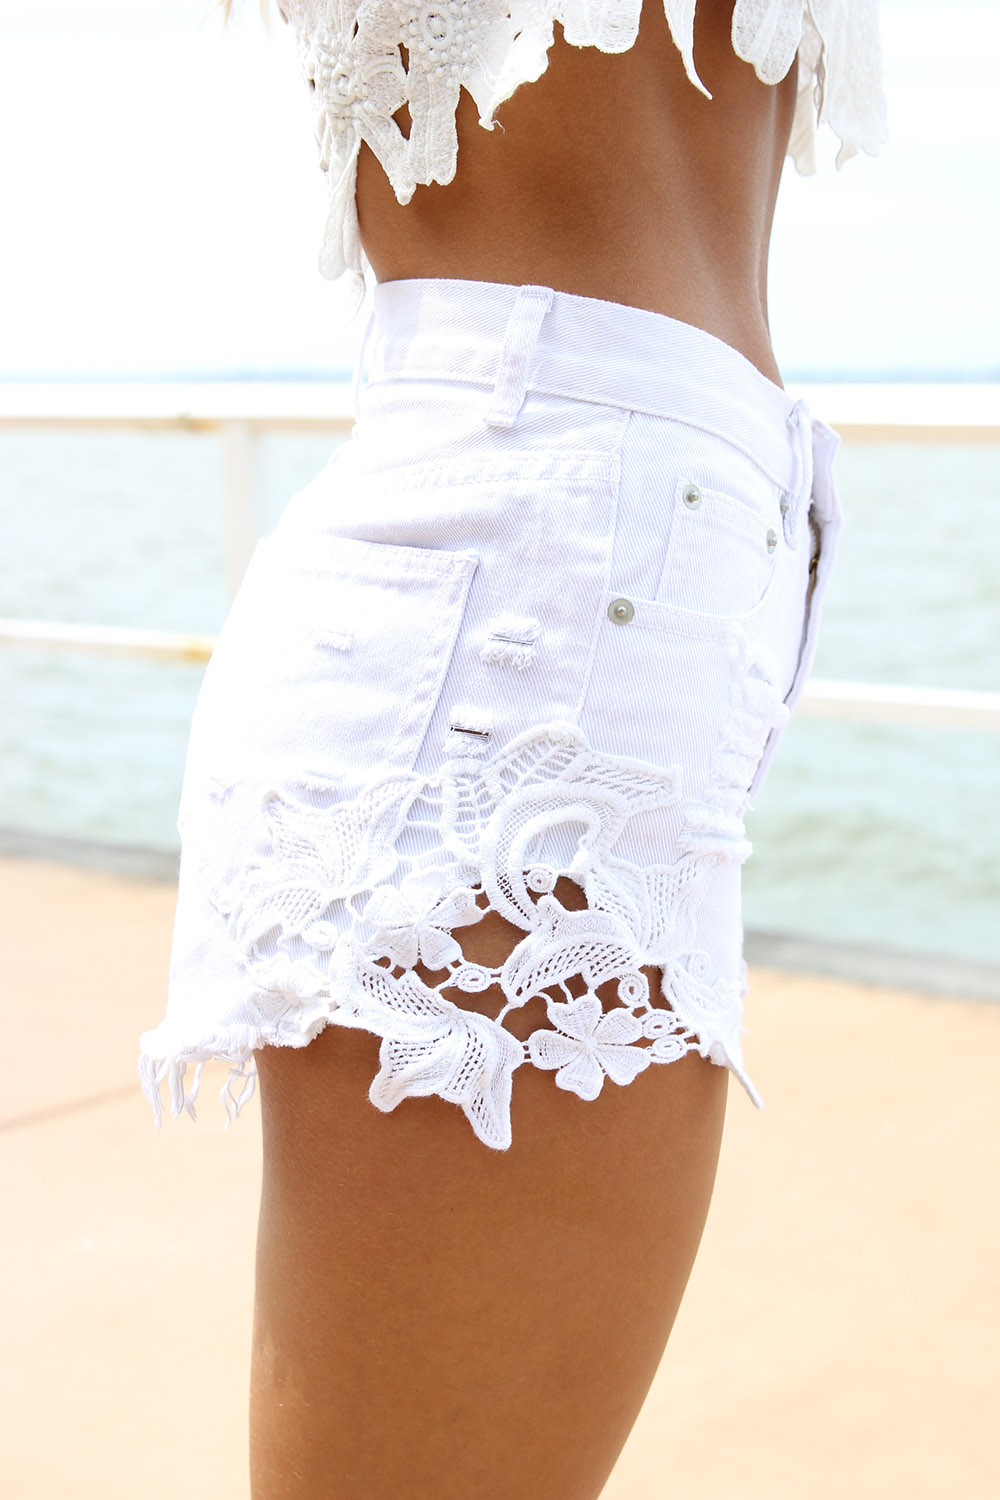 White Shorts - White Denim High-Waist Cut Off | UsTrendy